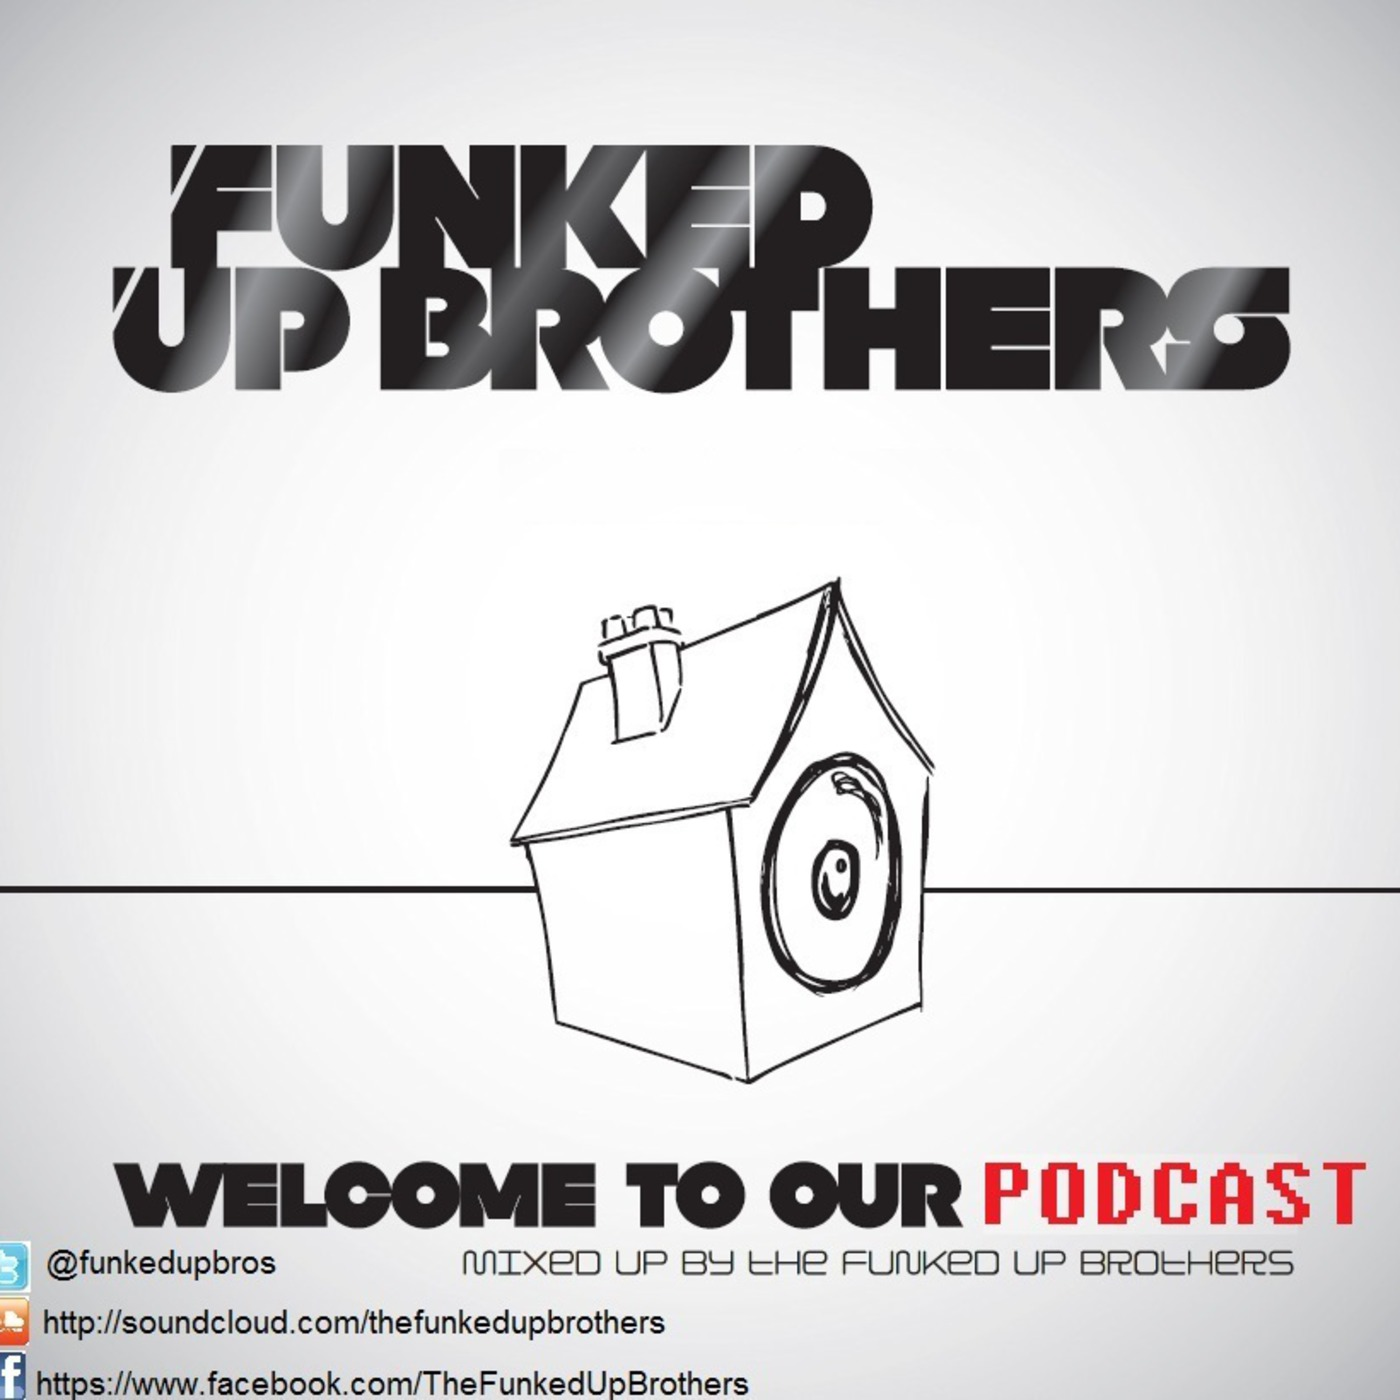 Funked Up Brothers' Podcast #WTOP